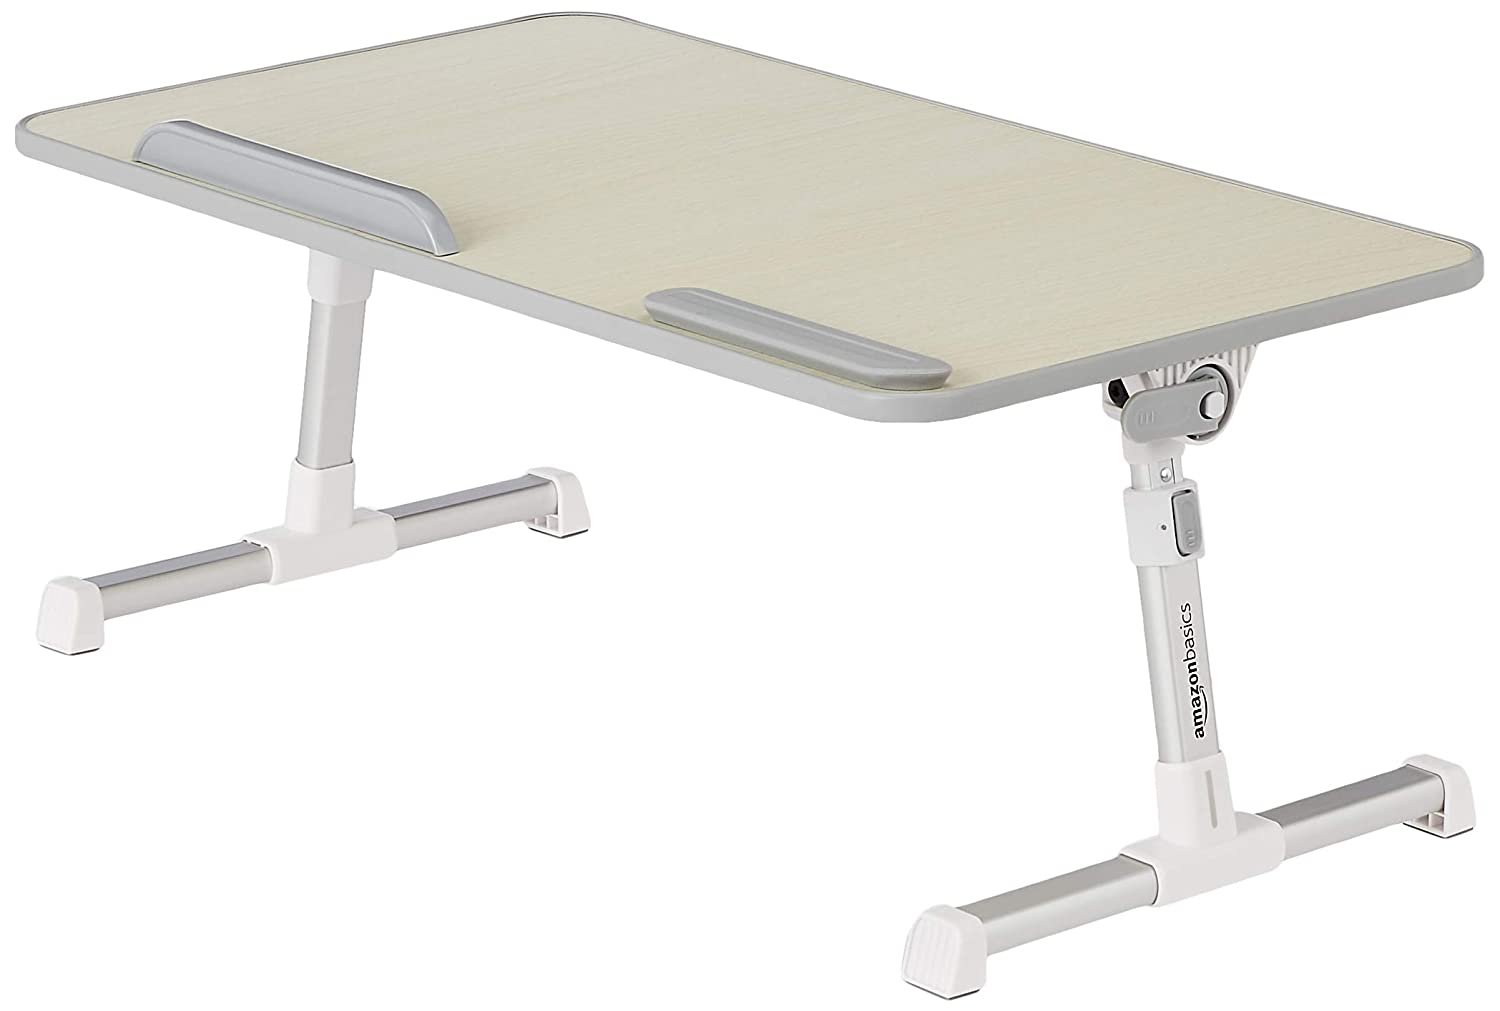 AmazonBasics Adjustable and Portable Laptop Table - Large